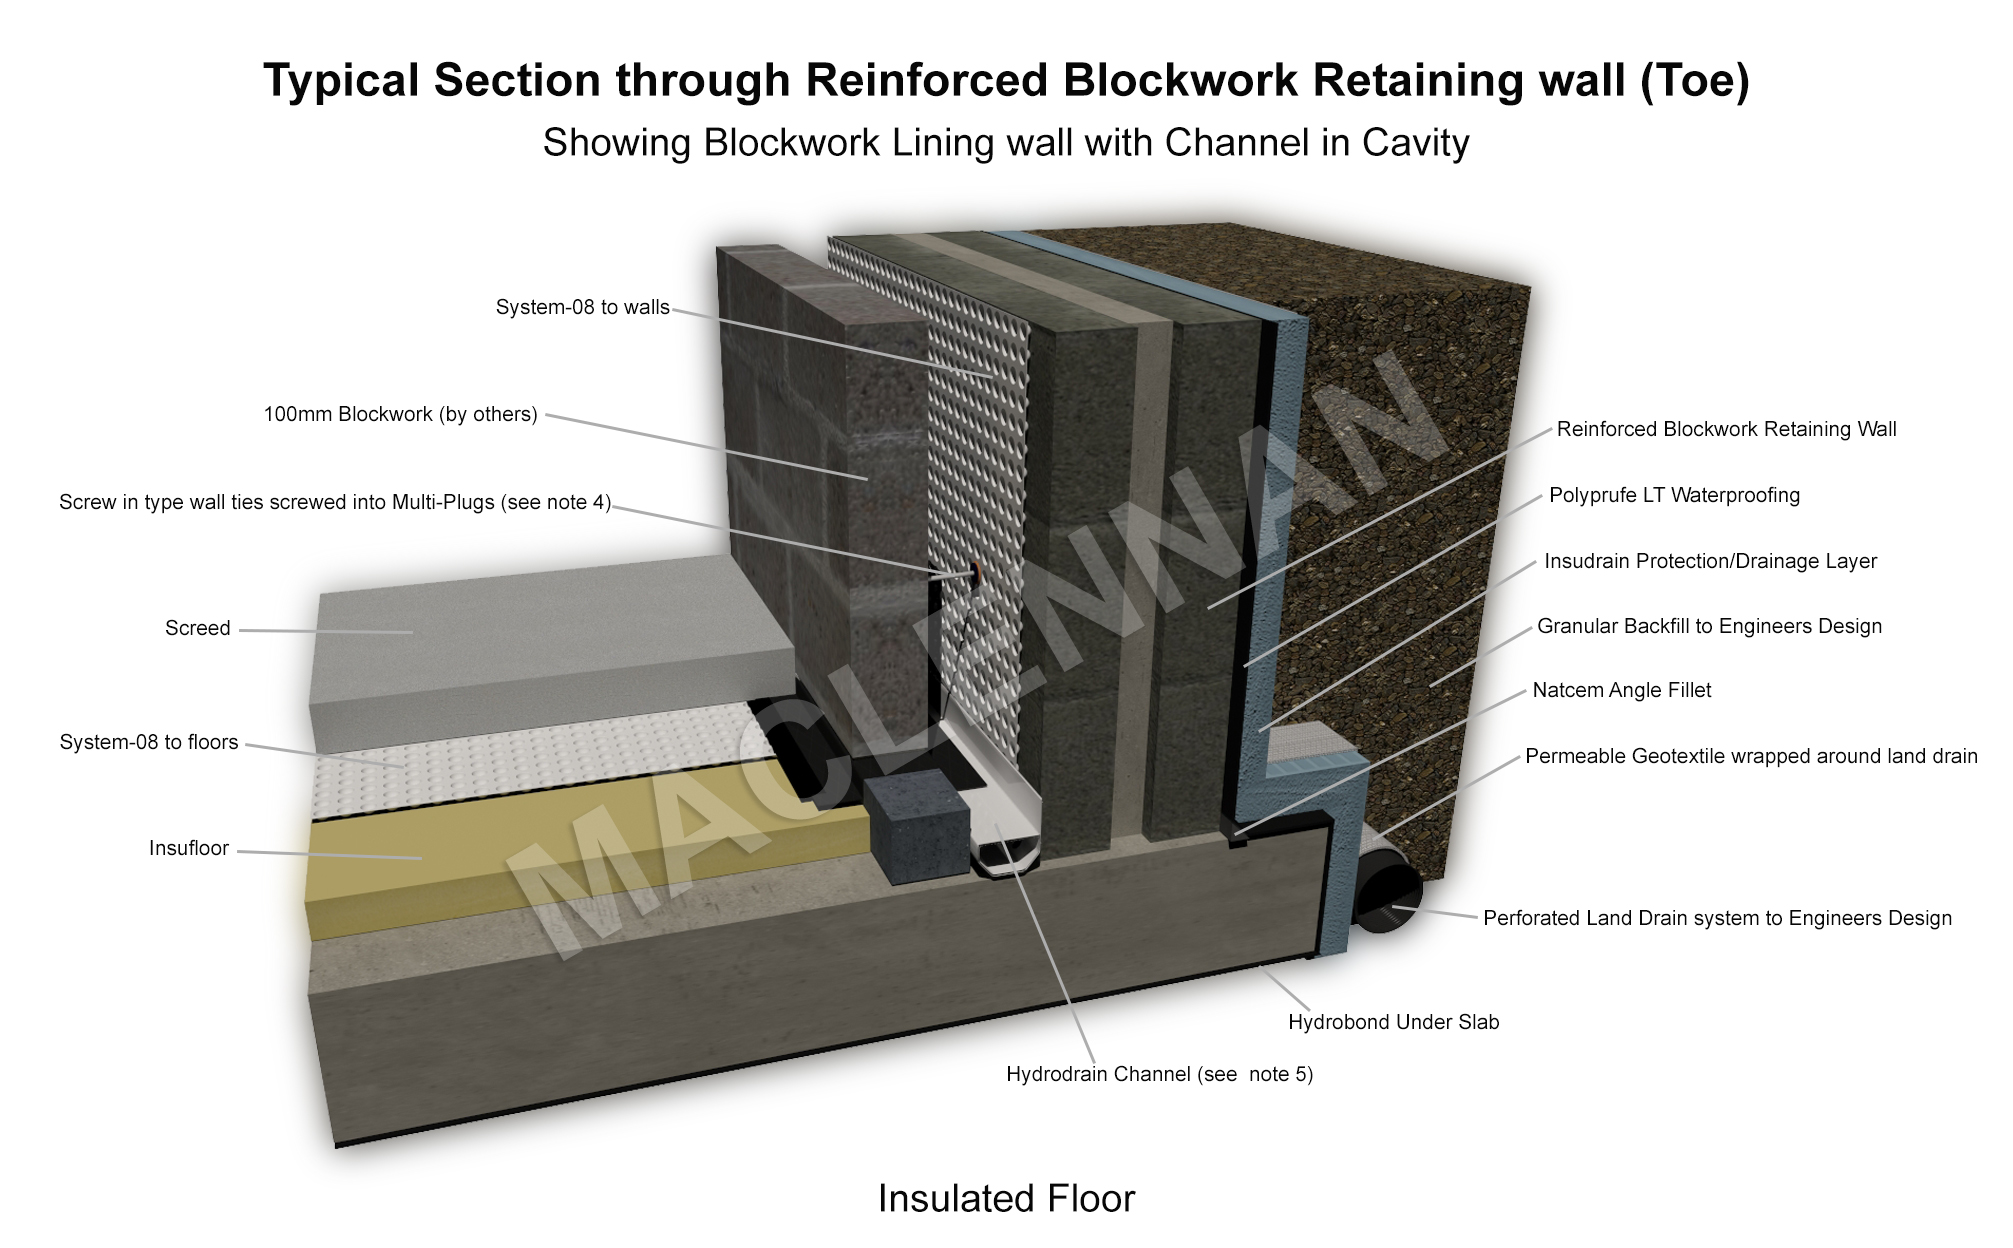 3d Drawings Reinforced Concrete Block Work Basement